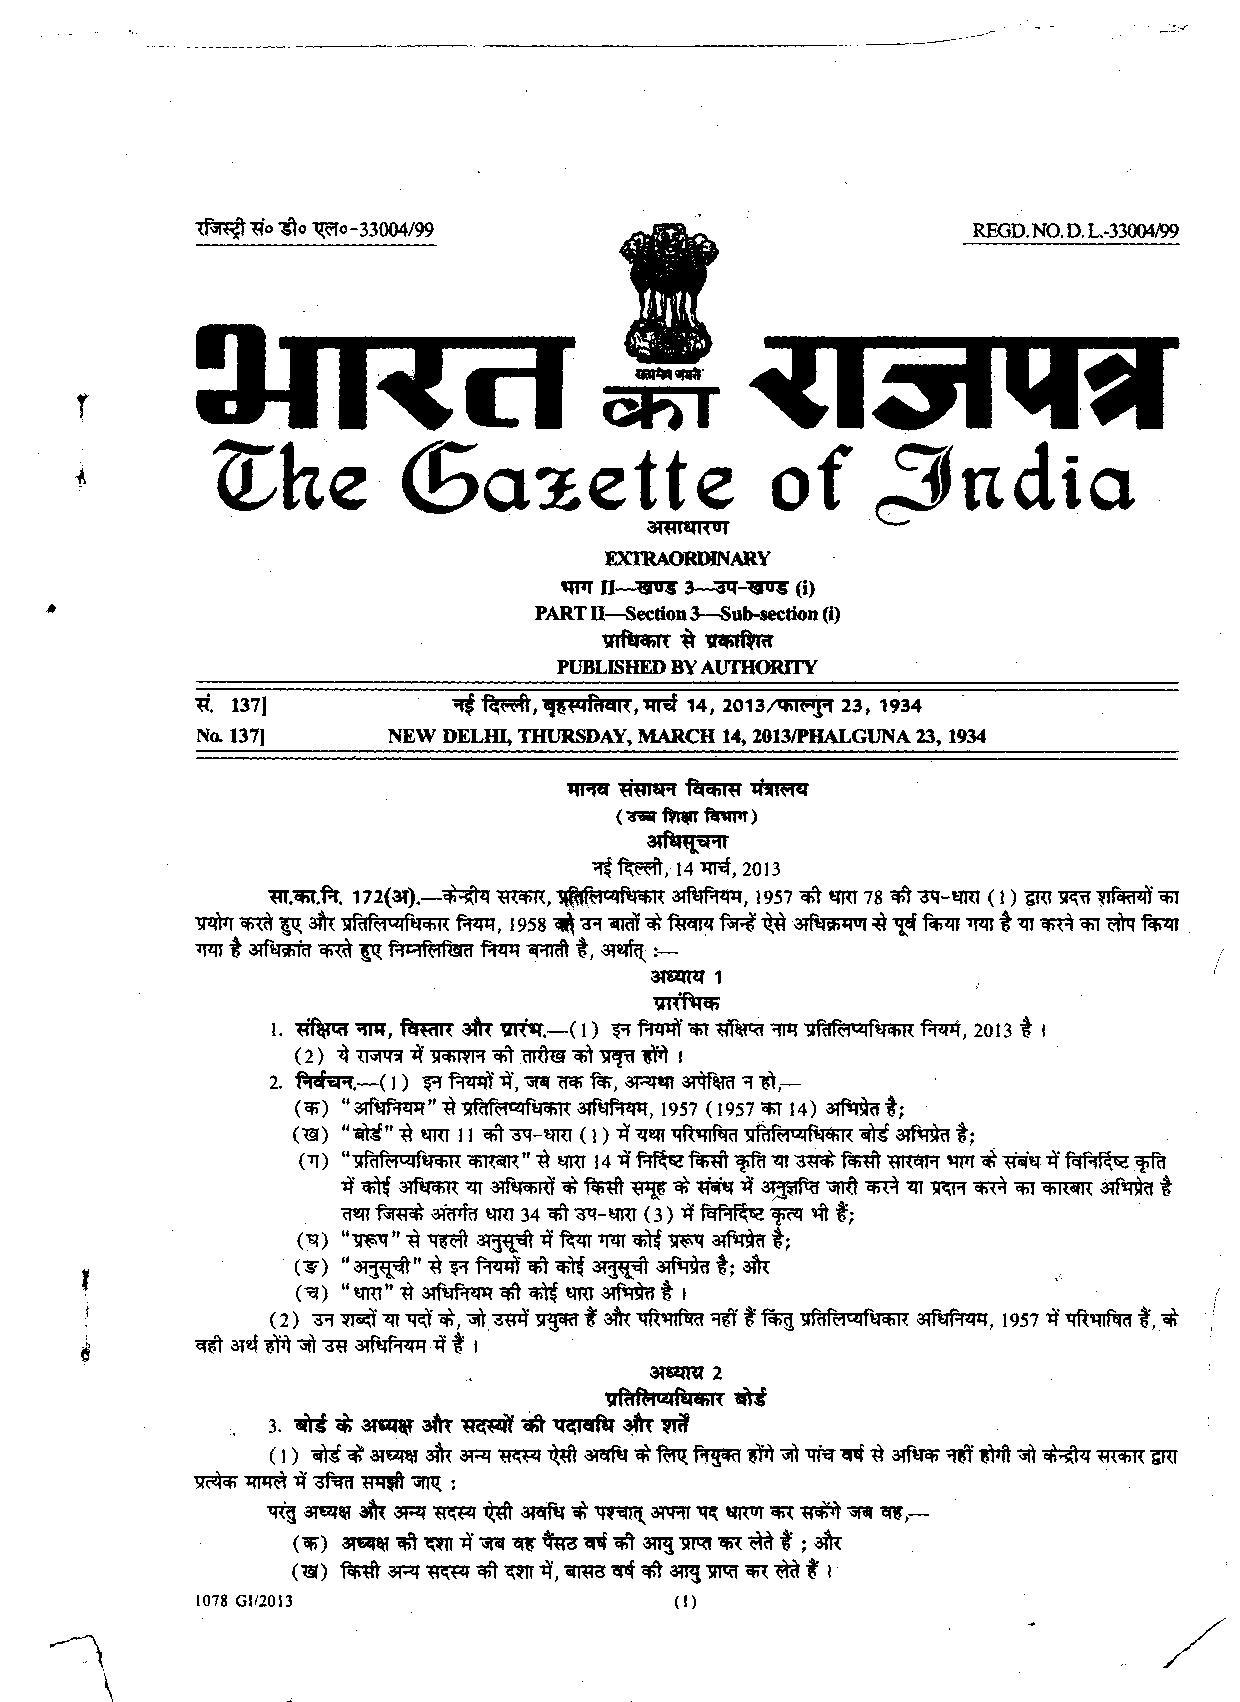 File:Gazette of India - Extraordinary - 2013 - Number 137